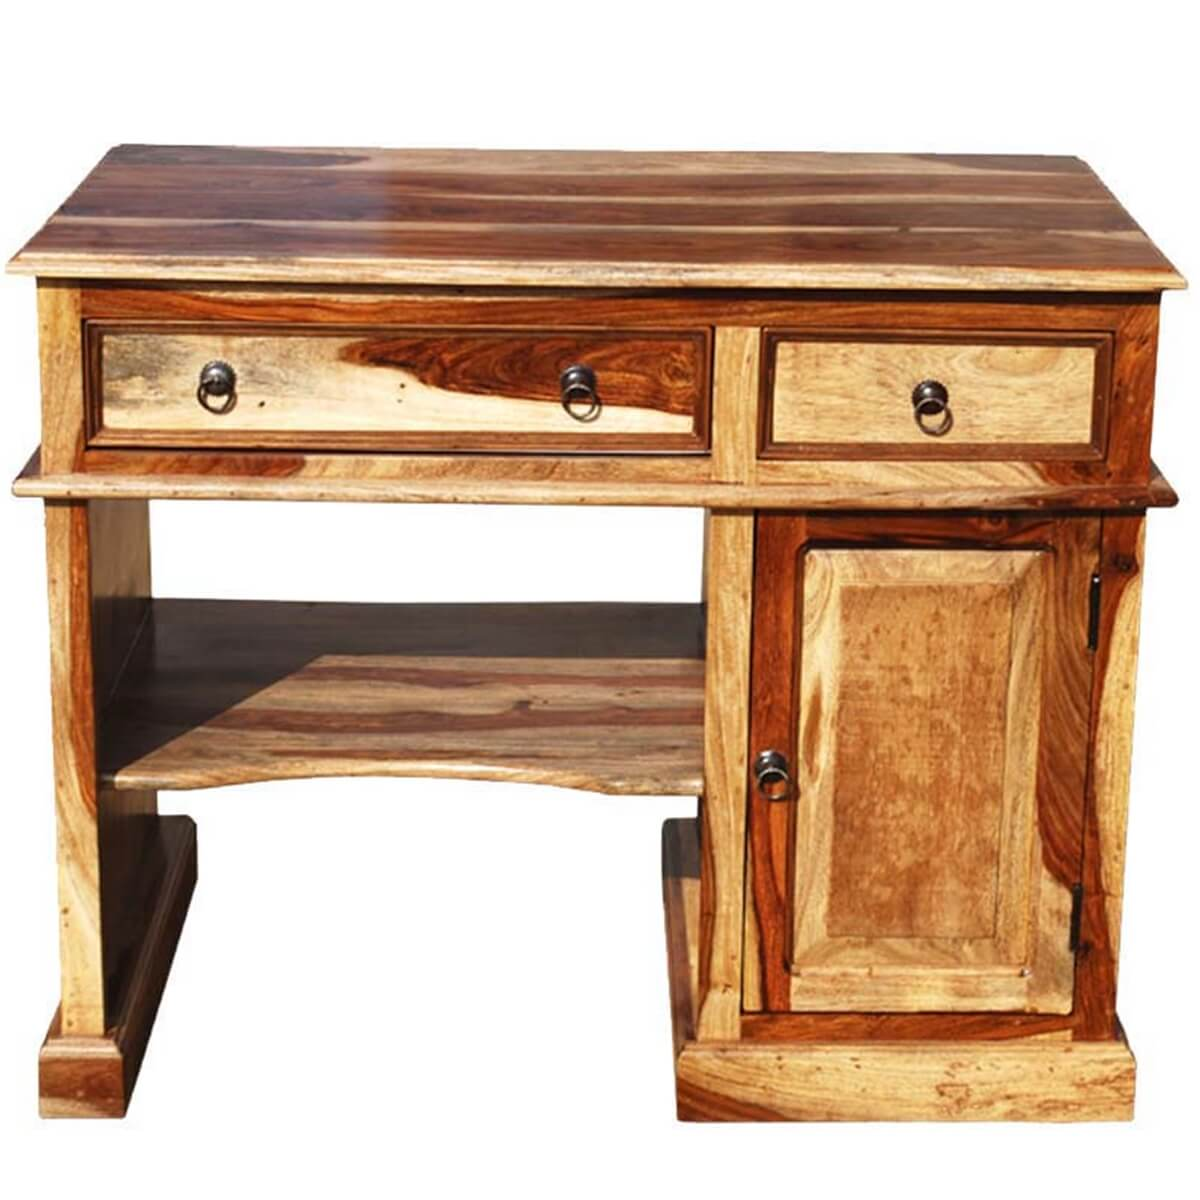 & Solid Wood Computer Desk For Small Space